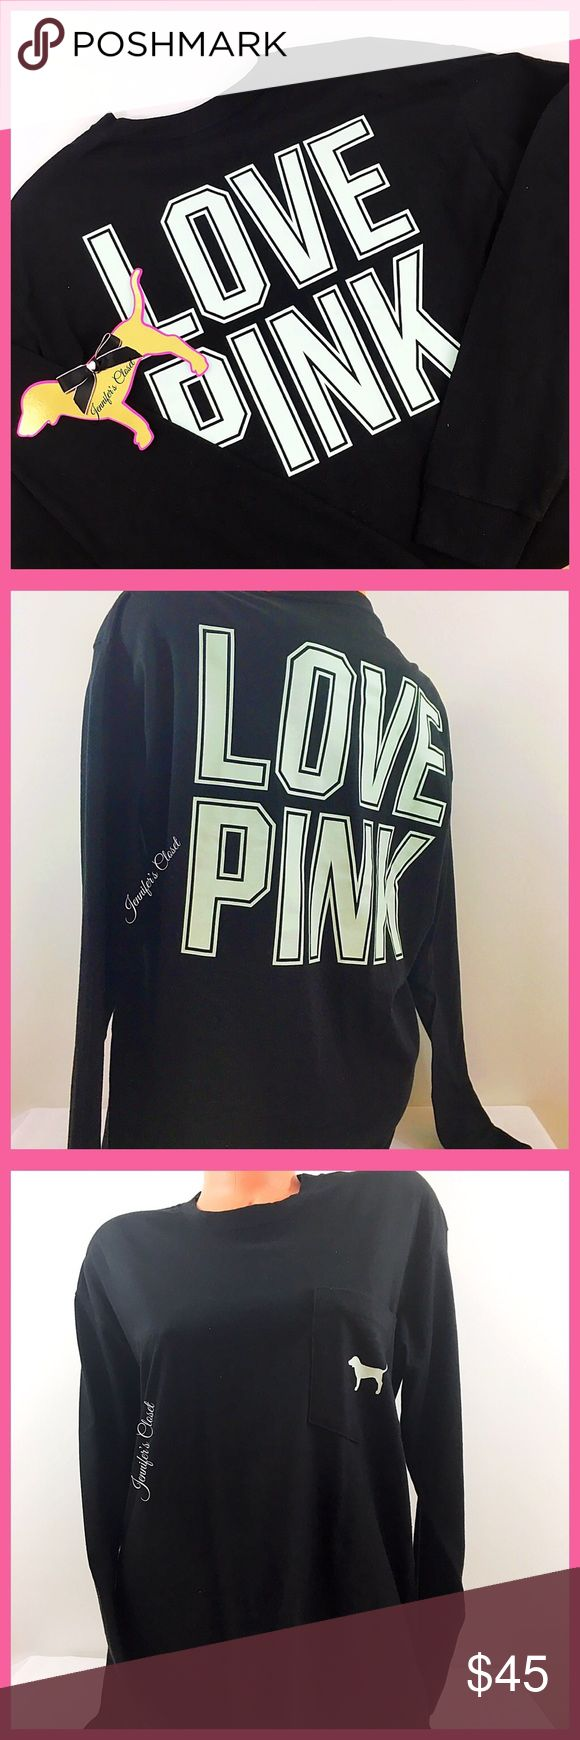 ••Victoria Secret PINK•• long sleeve pocket tshirt Welcome! 💞 Please read below if you are interested in this item:  🛍 Bundles available upon request for a discounted rate depending on how many items are added  🚭🐶🐱Smoke &pet free household  📬I ship Monday-Friday same/next day, unless it's a national holiday  💯All items are 100% AUTHENTIC  Some items are already priced at lowest. Do not use the offer button to lowball. It is offensive & not welcome in this closet! NO TRADES OR PP…